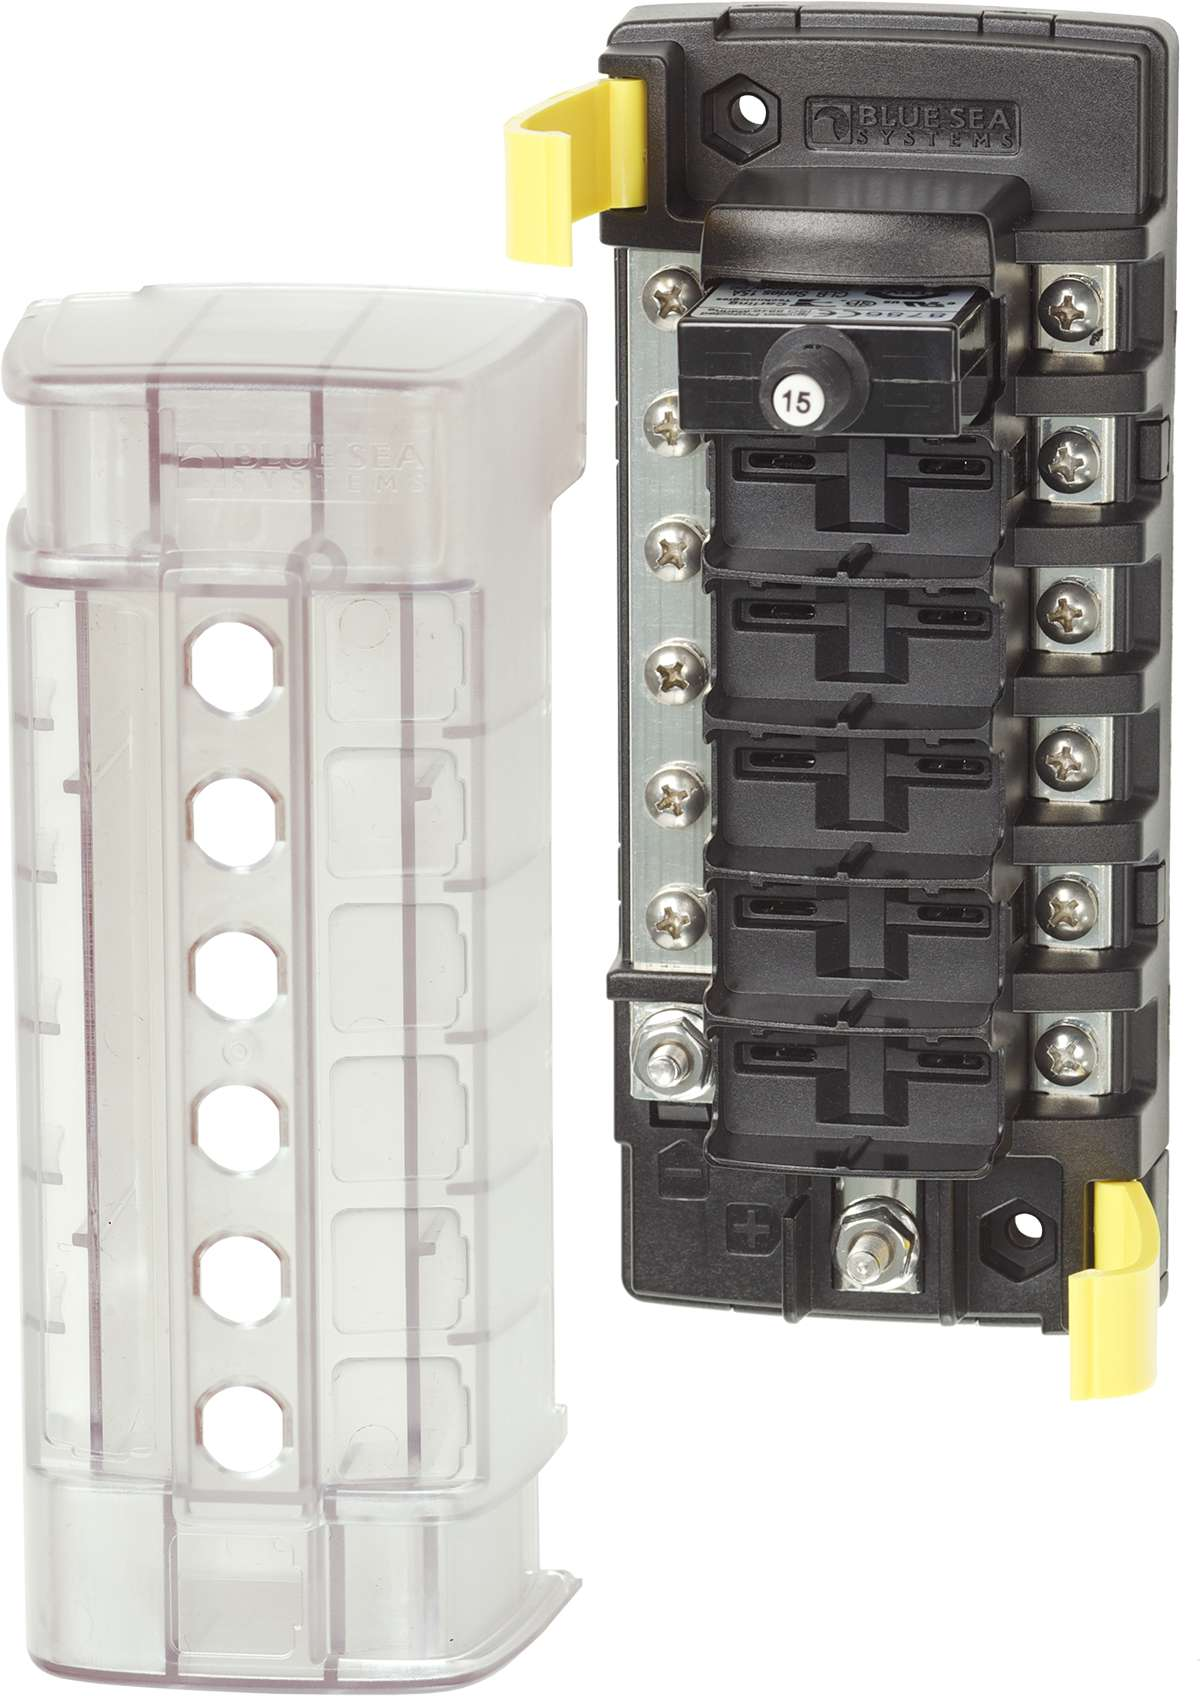 St Clb Circuit Breaker Block